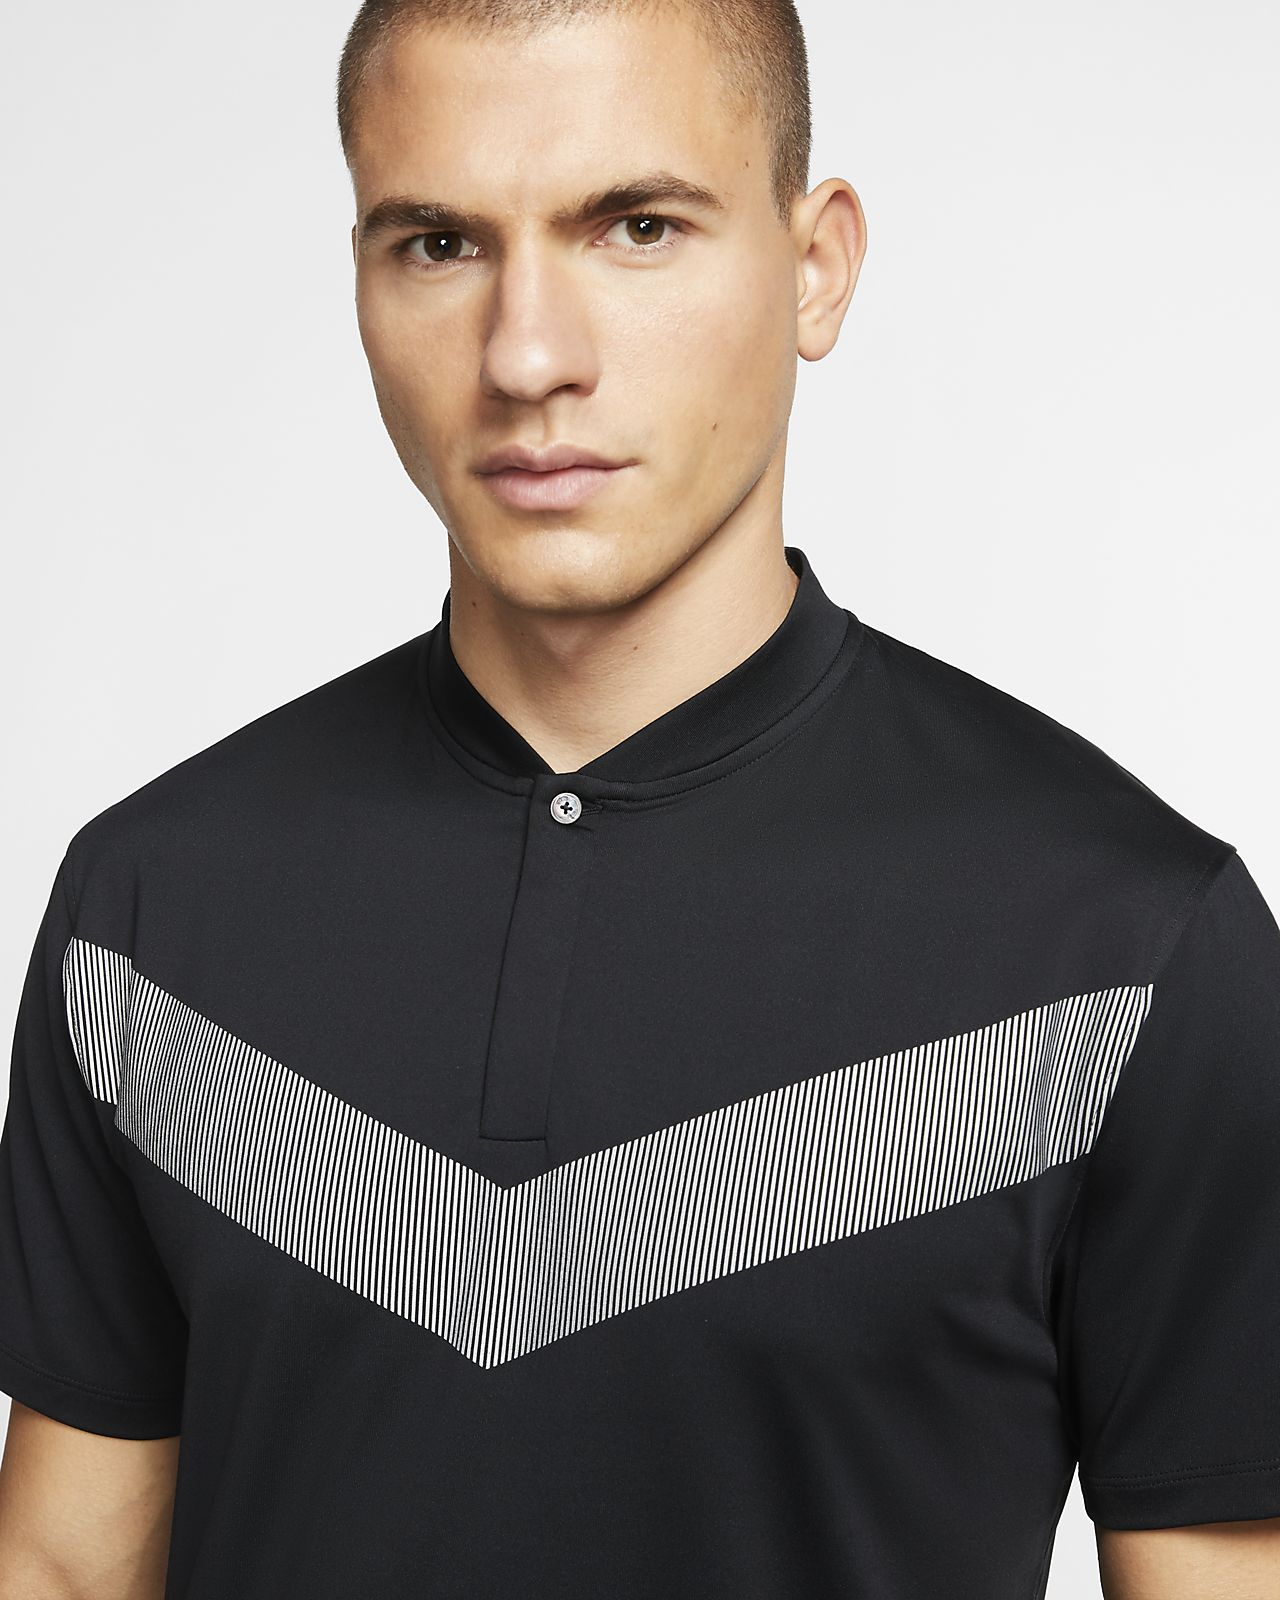 the nike polo tiger woods